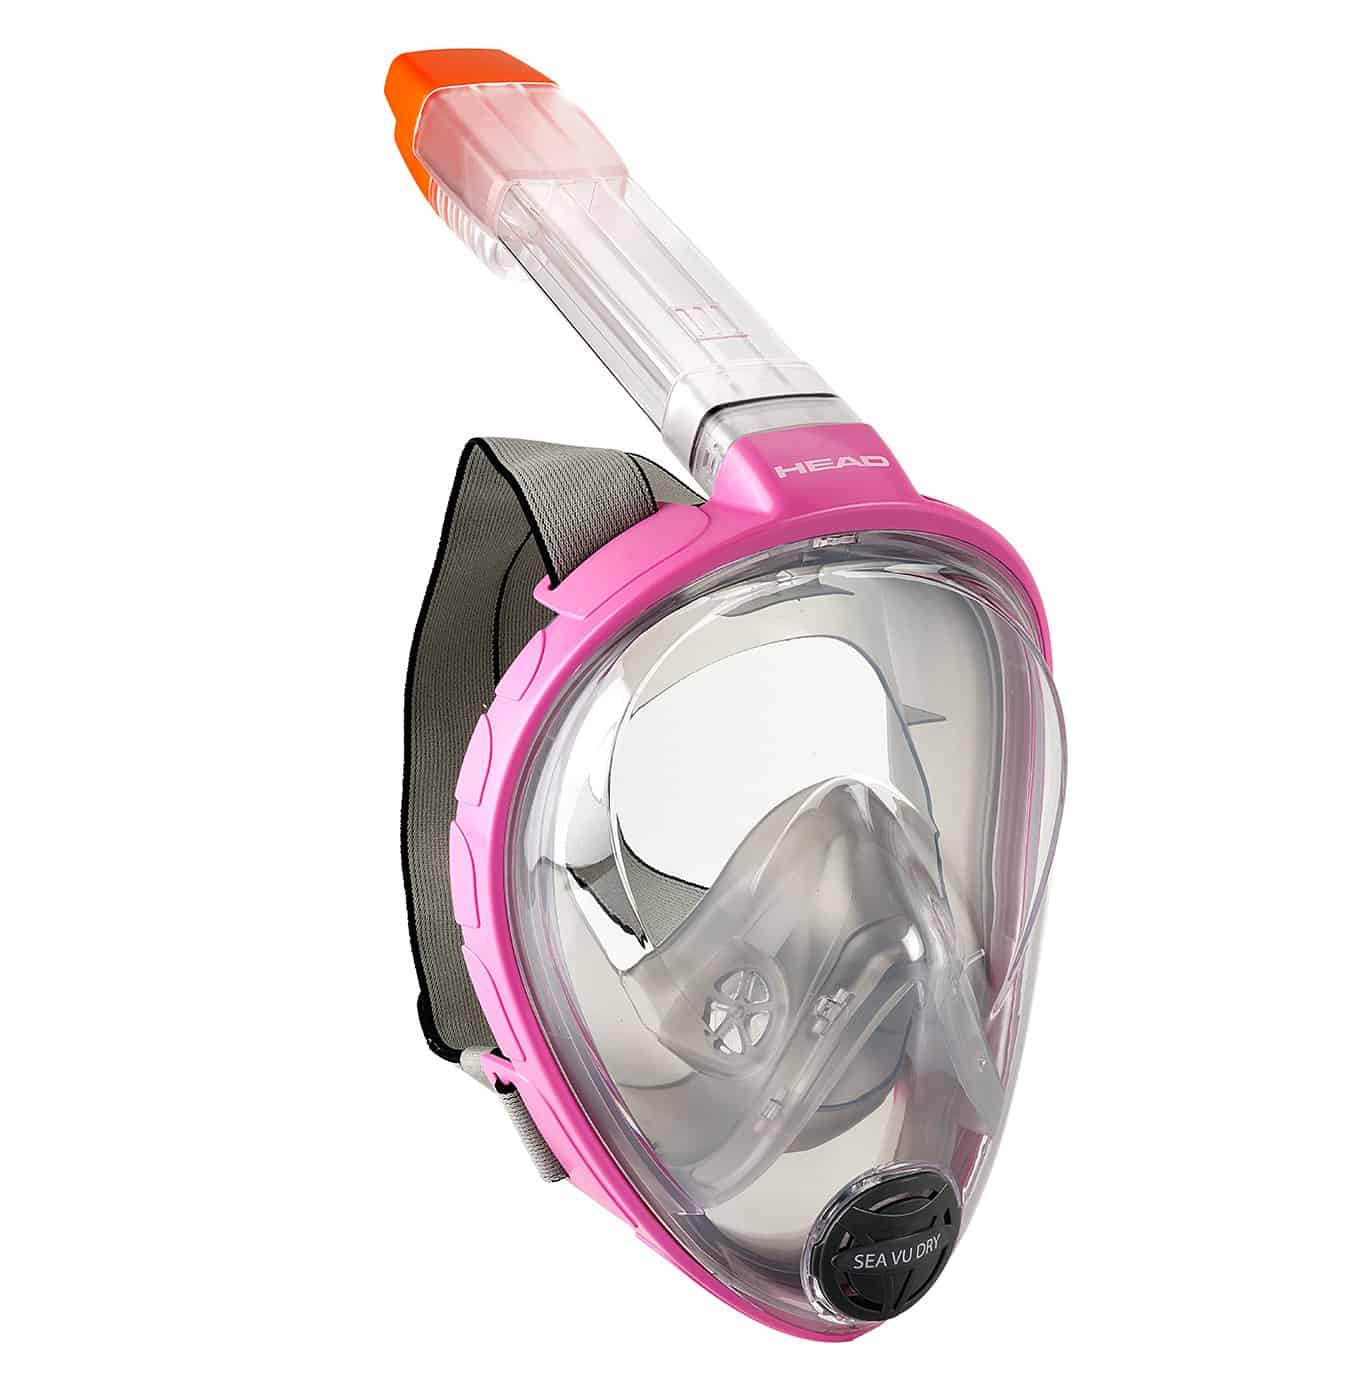 HEAD Vu Dry Full Face Snorkeling Mask